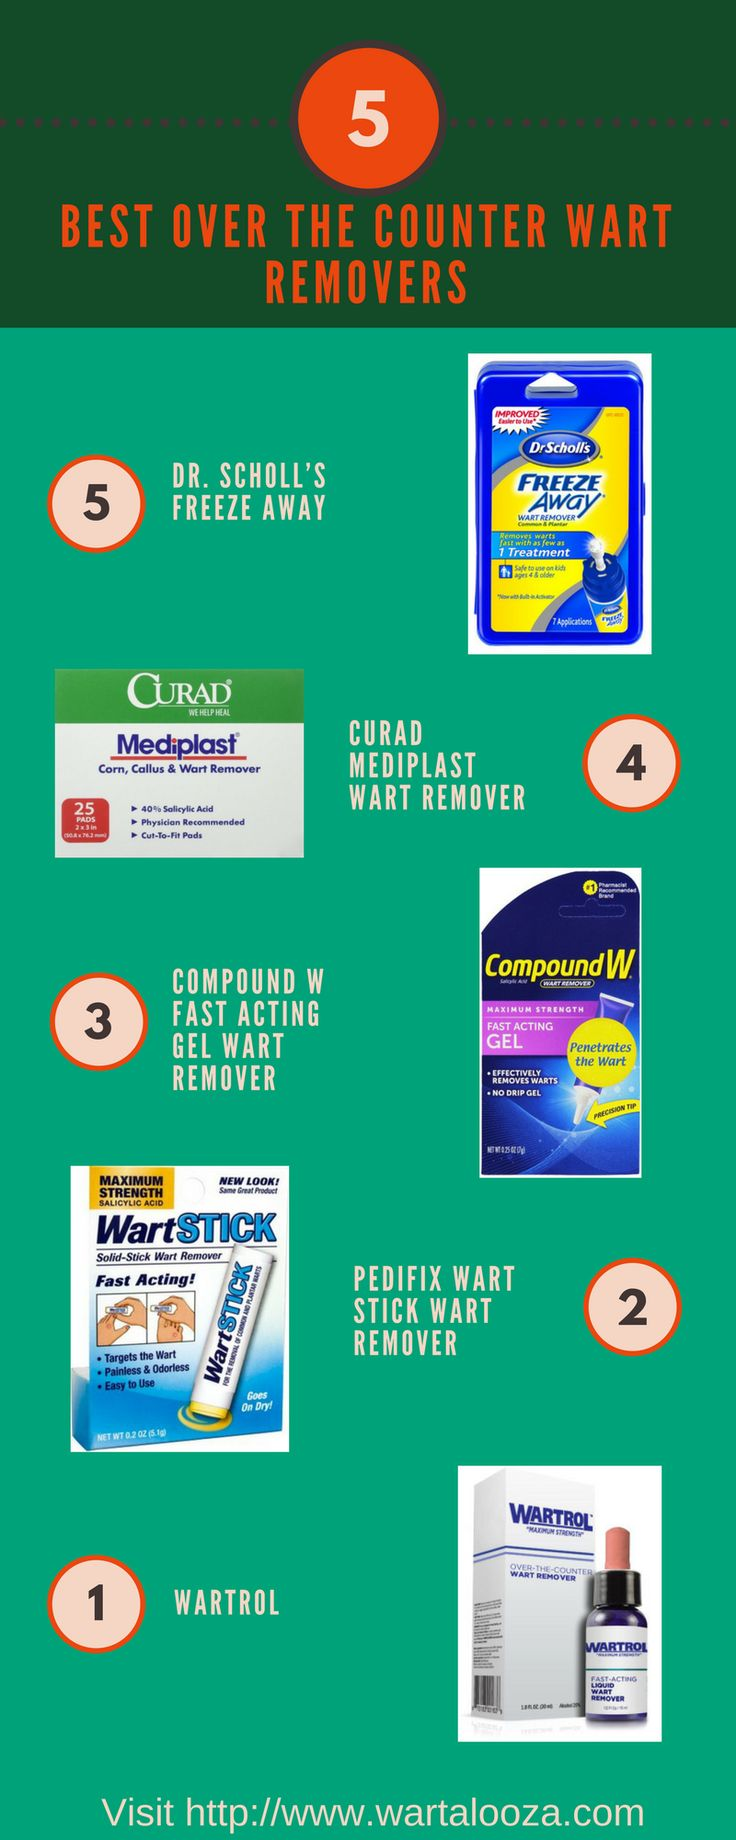 We compiled the top five over the counter wart removers for you. Check out the recommendations and which one of them is the best wart remover to use!